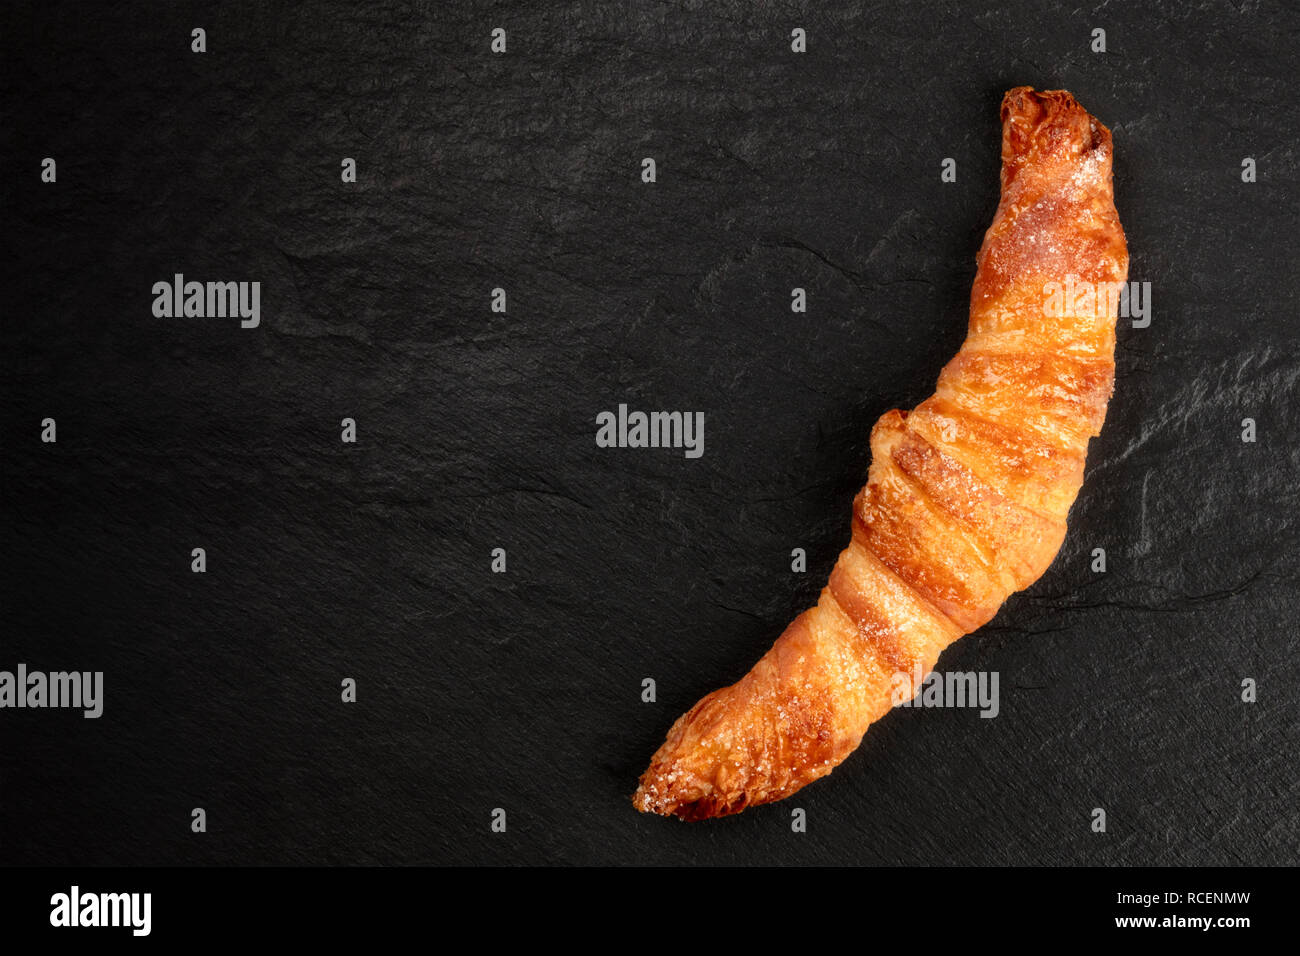 A croissant on a black background, shot from above, with copy space - Stock Image